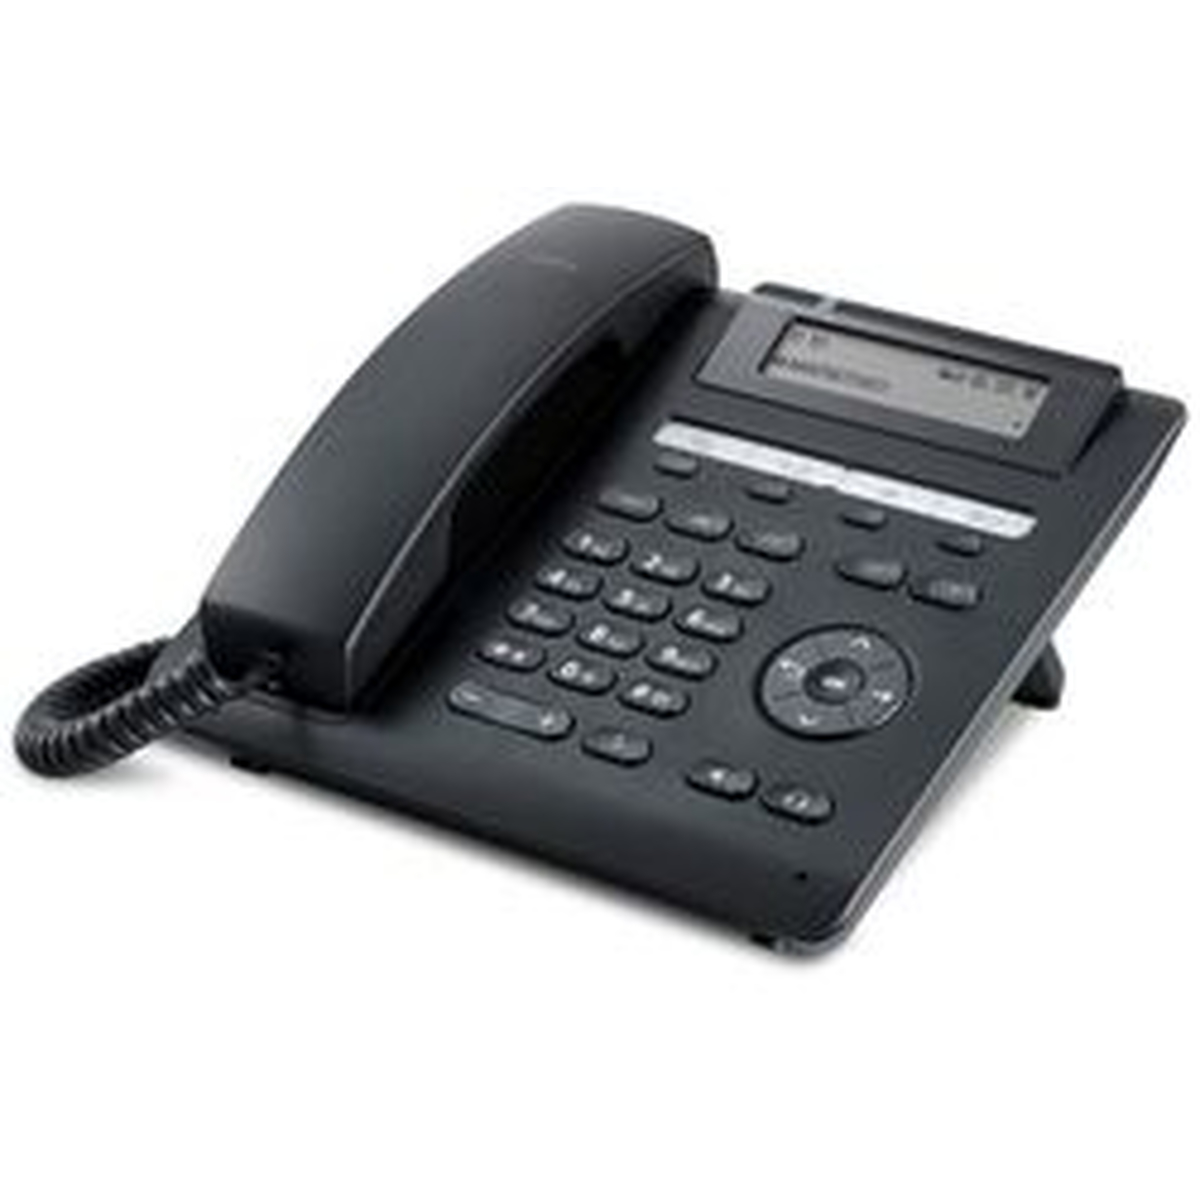 OpenScape Desk Phone CP200 CUC426 SIP